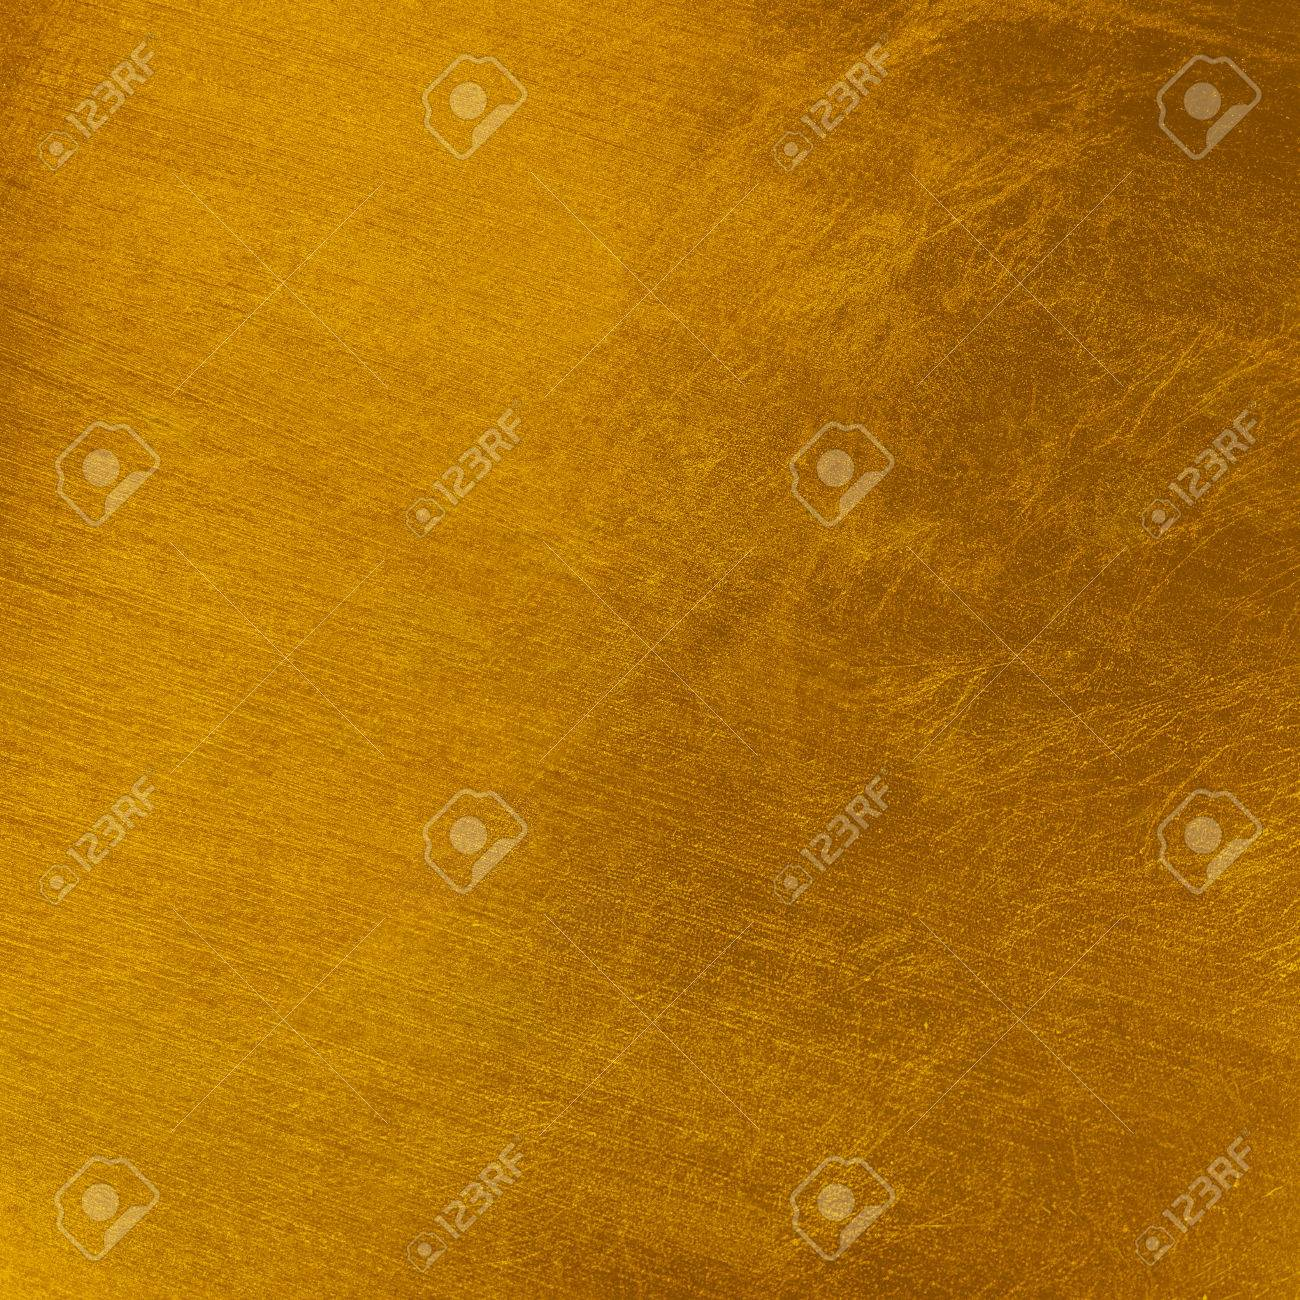 Golden Color Background For Christmas Stretched Marks Rough And Rustic Textured Surface Stock